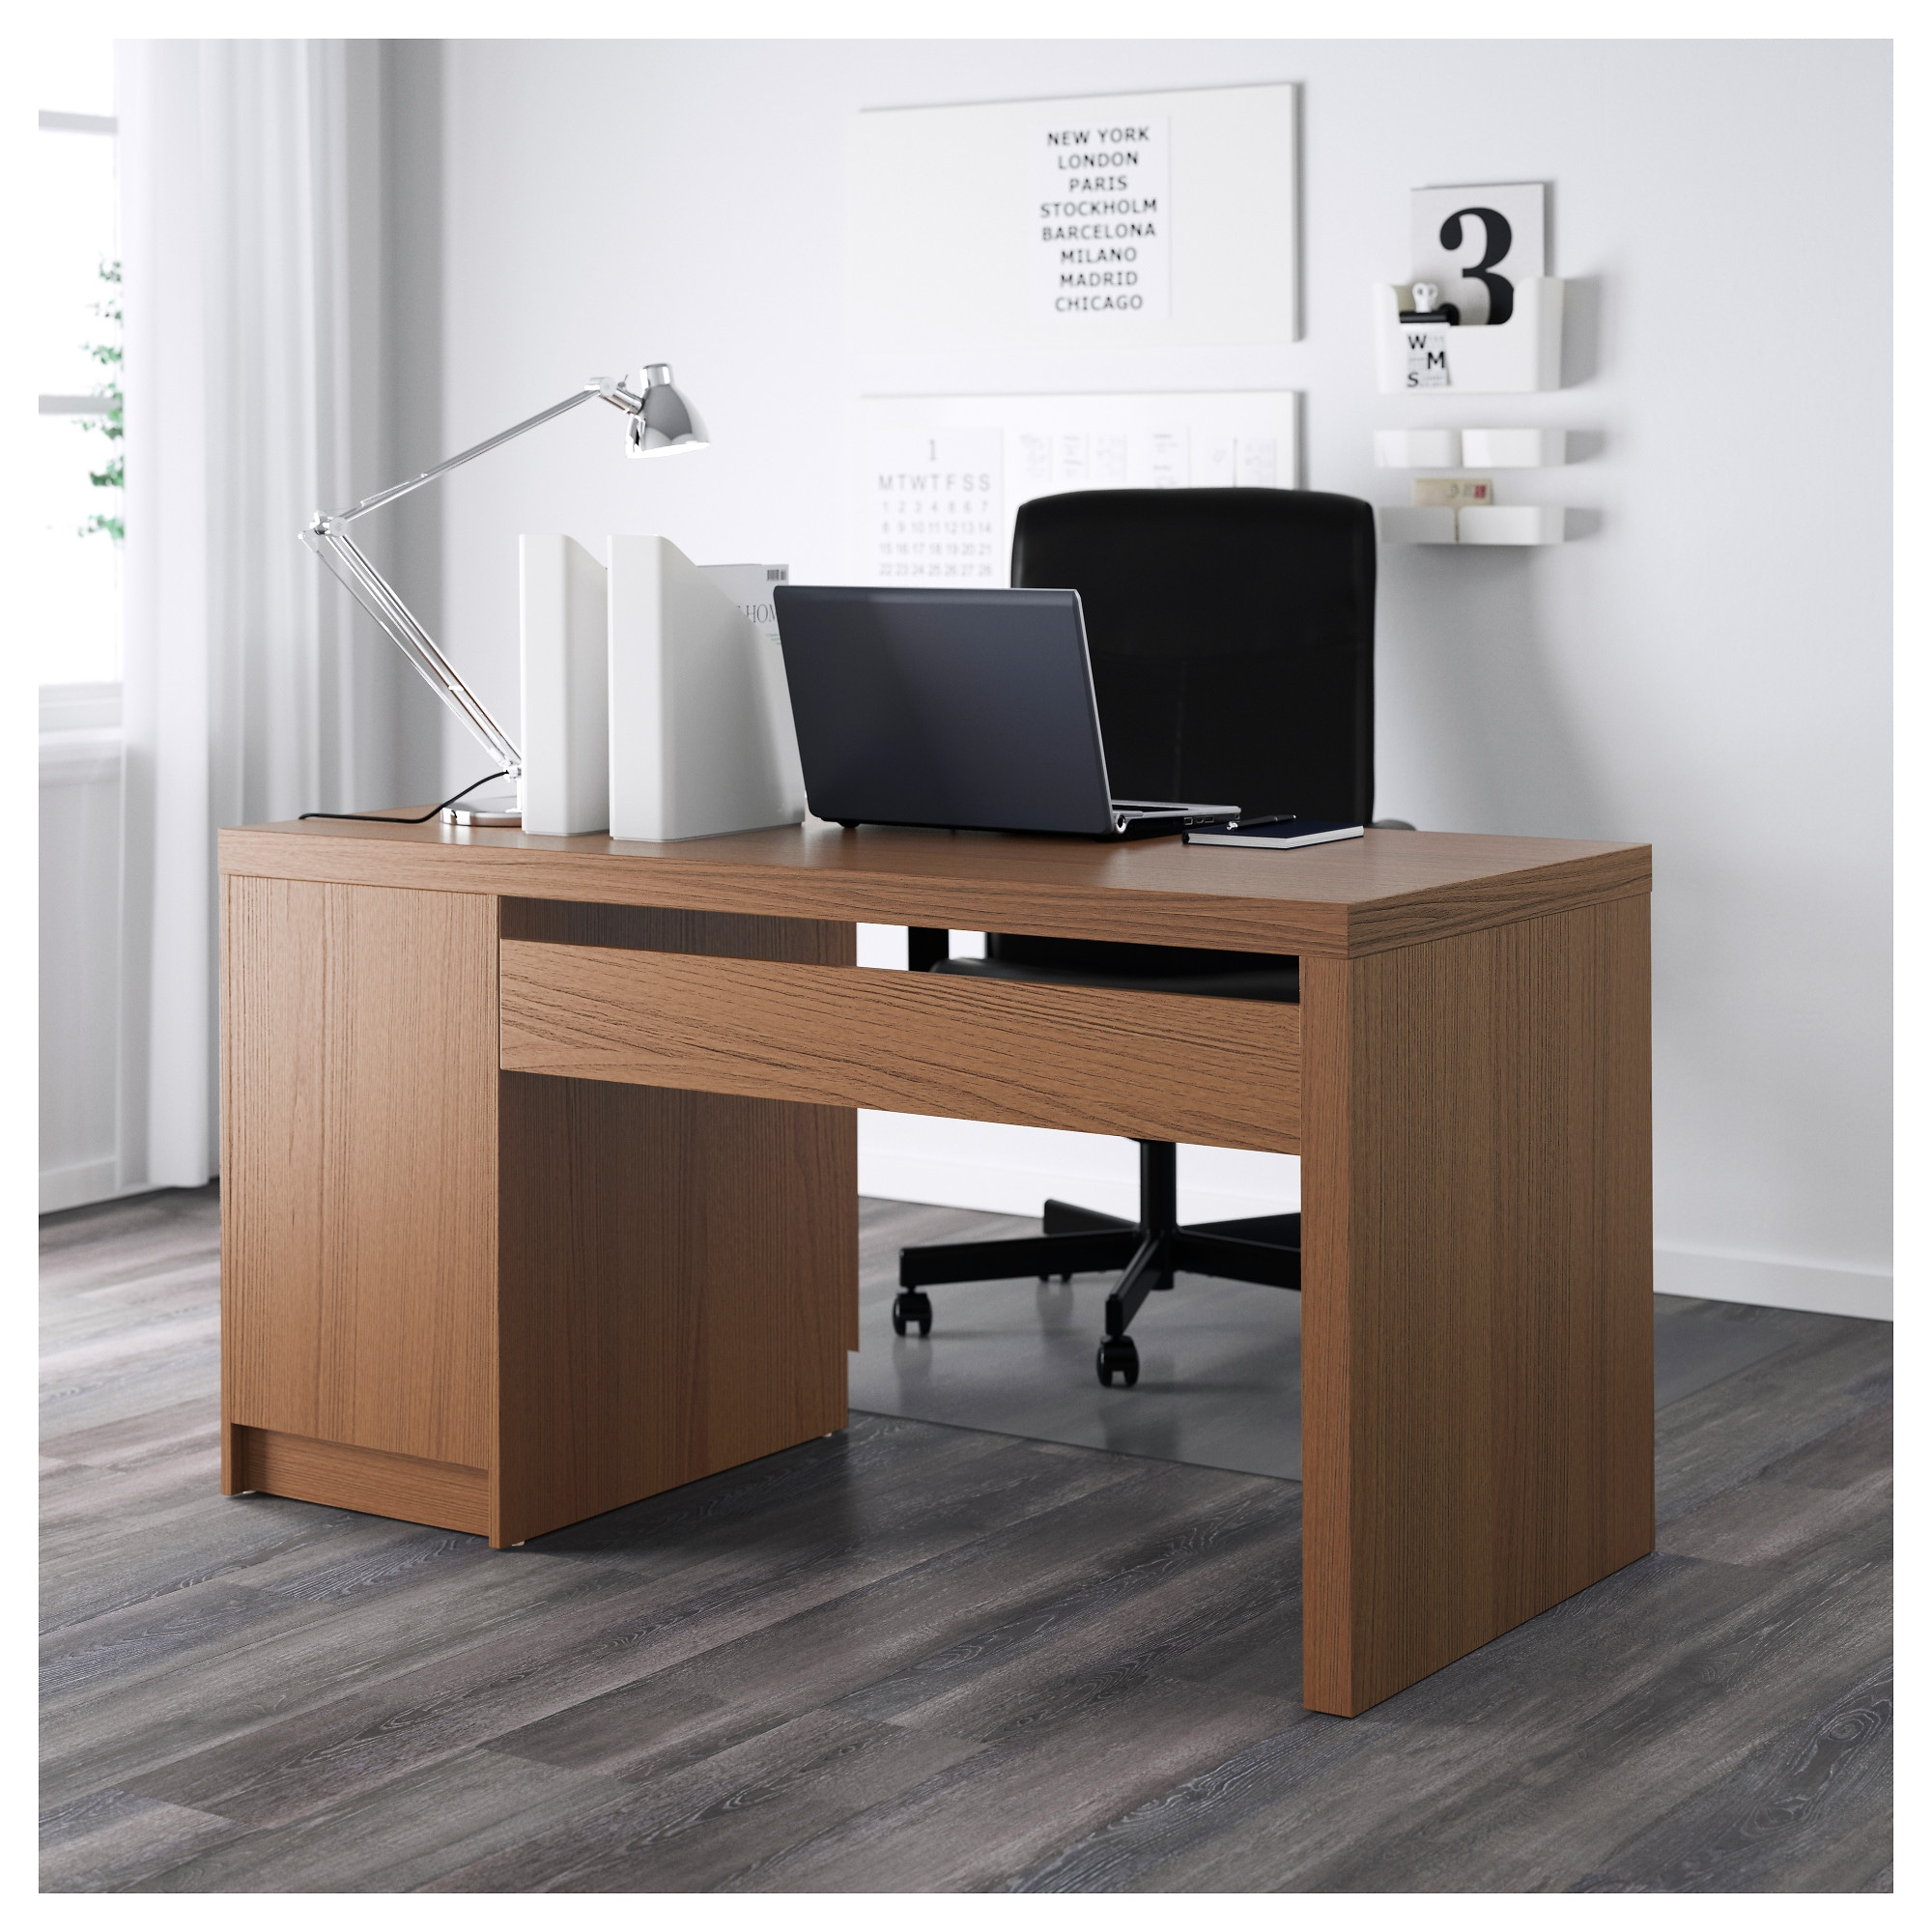 Computer table models with prices - Computer Table Models With Prices 9